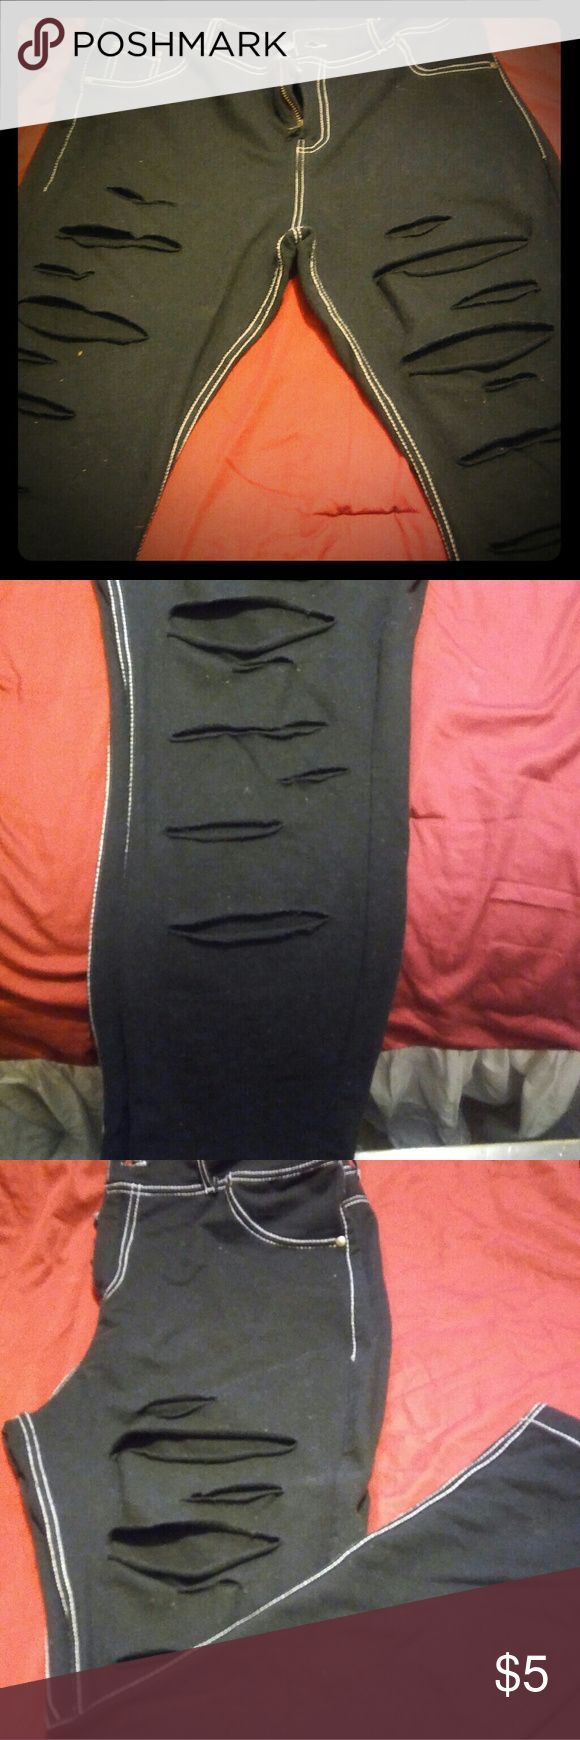 WOMEN'S JEGGINGS Women's Stressed Jeggings... Soft, Comfy Material that Accomodates Curves Very Nice! It Has White Stitching that Outlines The Pants! They Are A Size Large But Fits Like A Medium! Any Further Questions Feel Free To Ask!  Thanks For Browsing Through My Closet! Pants